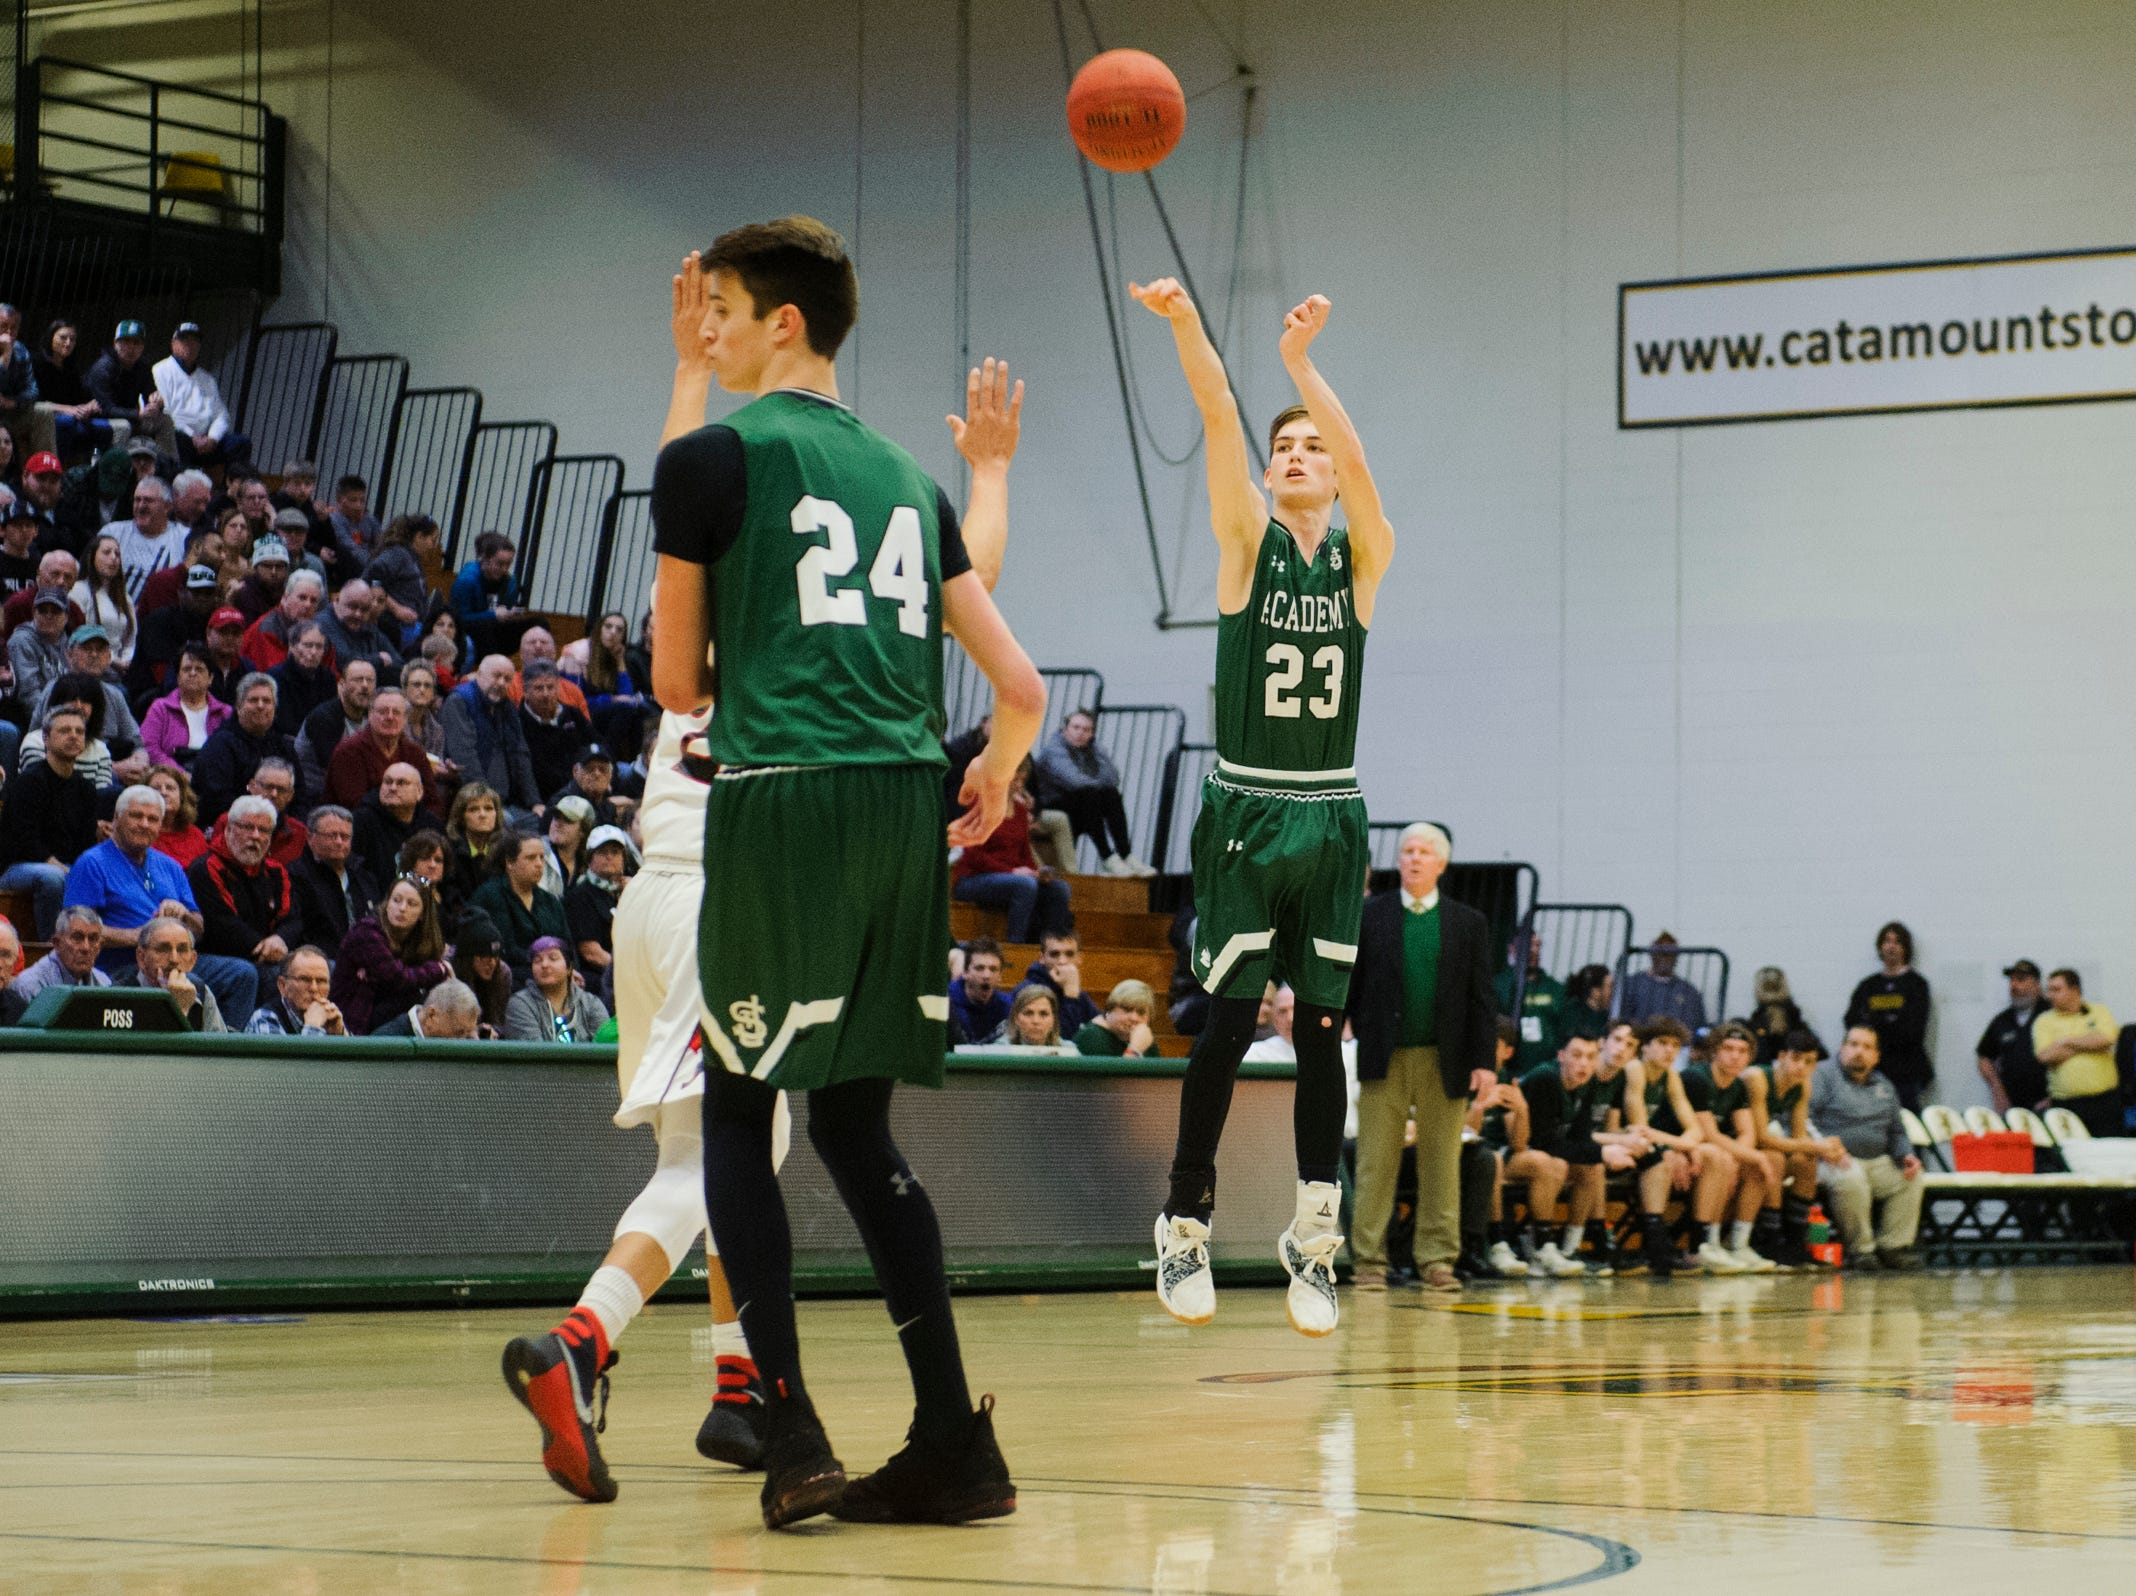 St. Johnsbury's Logan Wendell (23) shoots the ball during the DI boys basketball championship game between the St. Johnsbury Hilltoppers and the Rutland Raiders at Patrick Gym on Sunday afternoon March 17, 2019 in Burlington, Vermont.